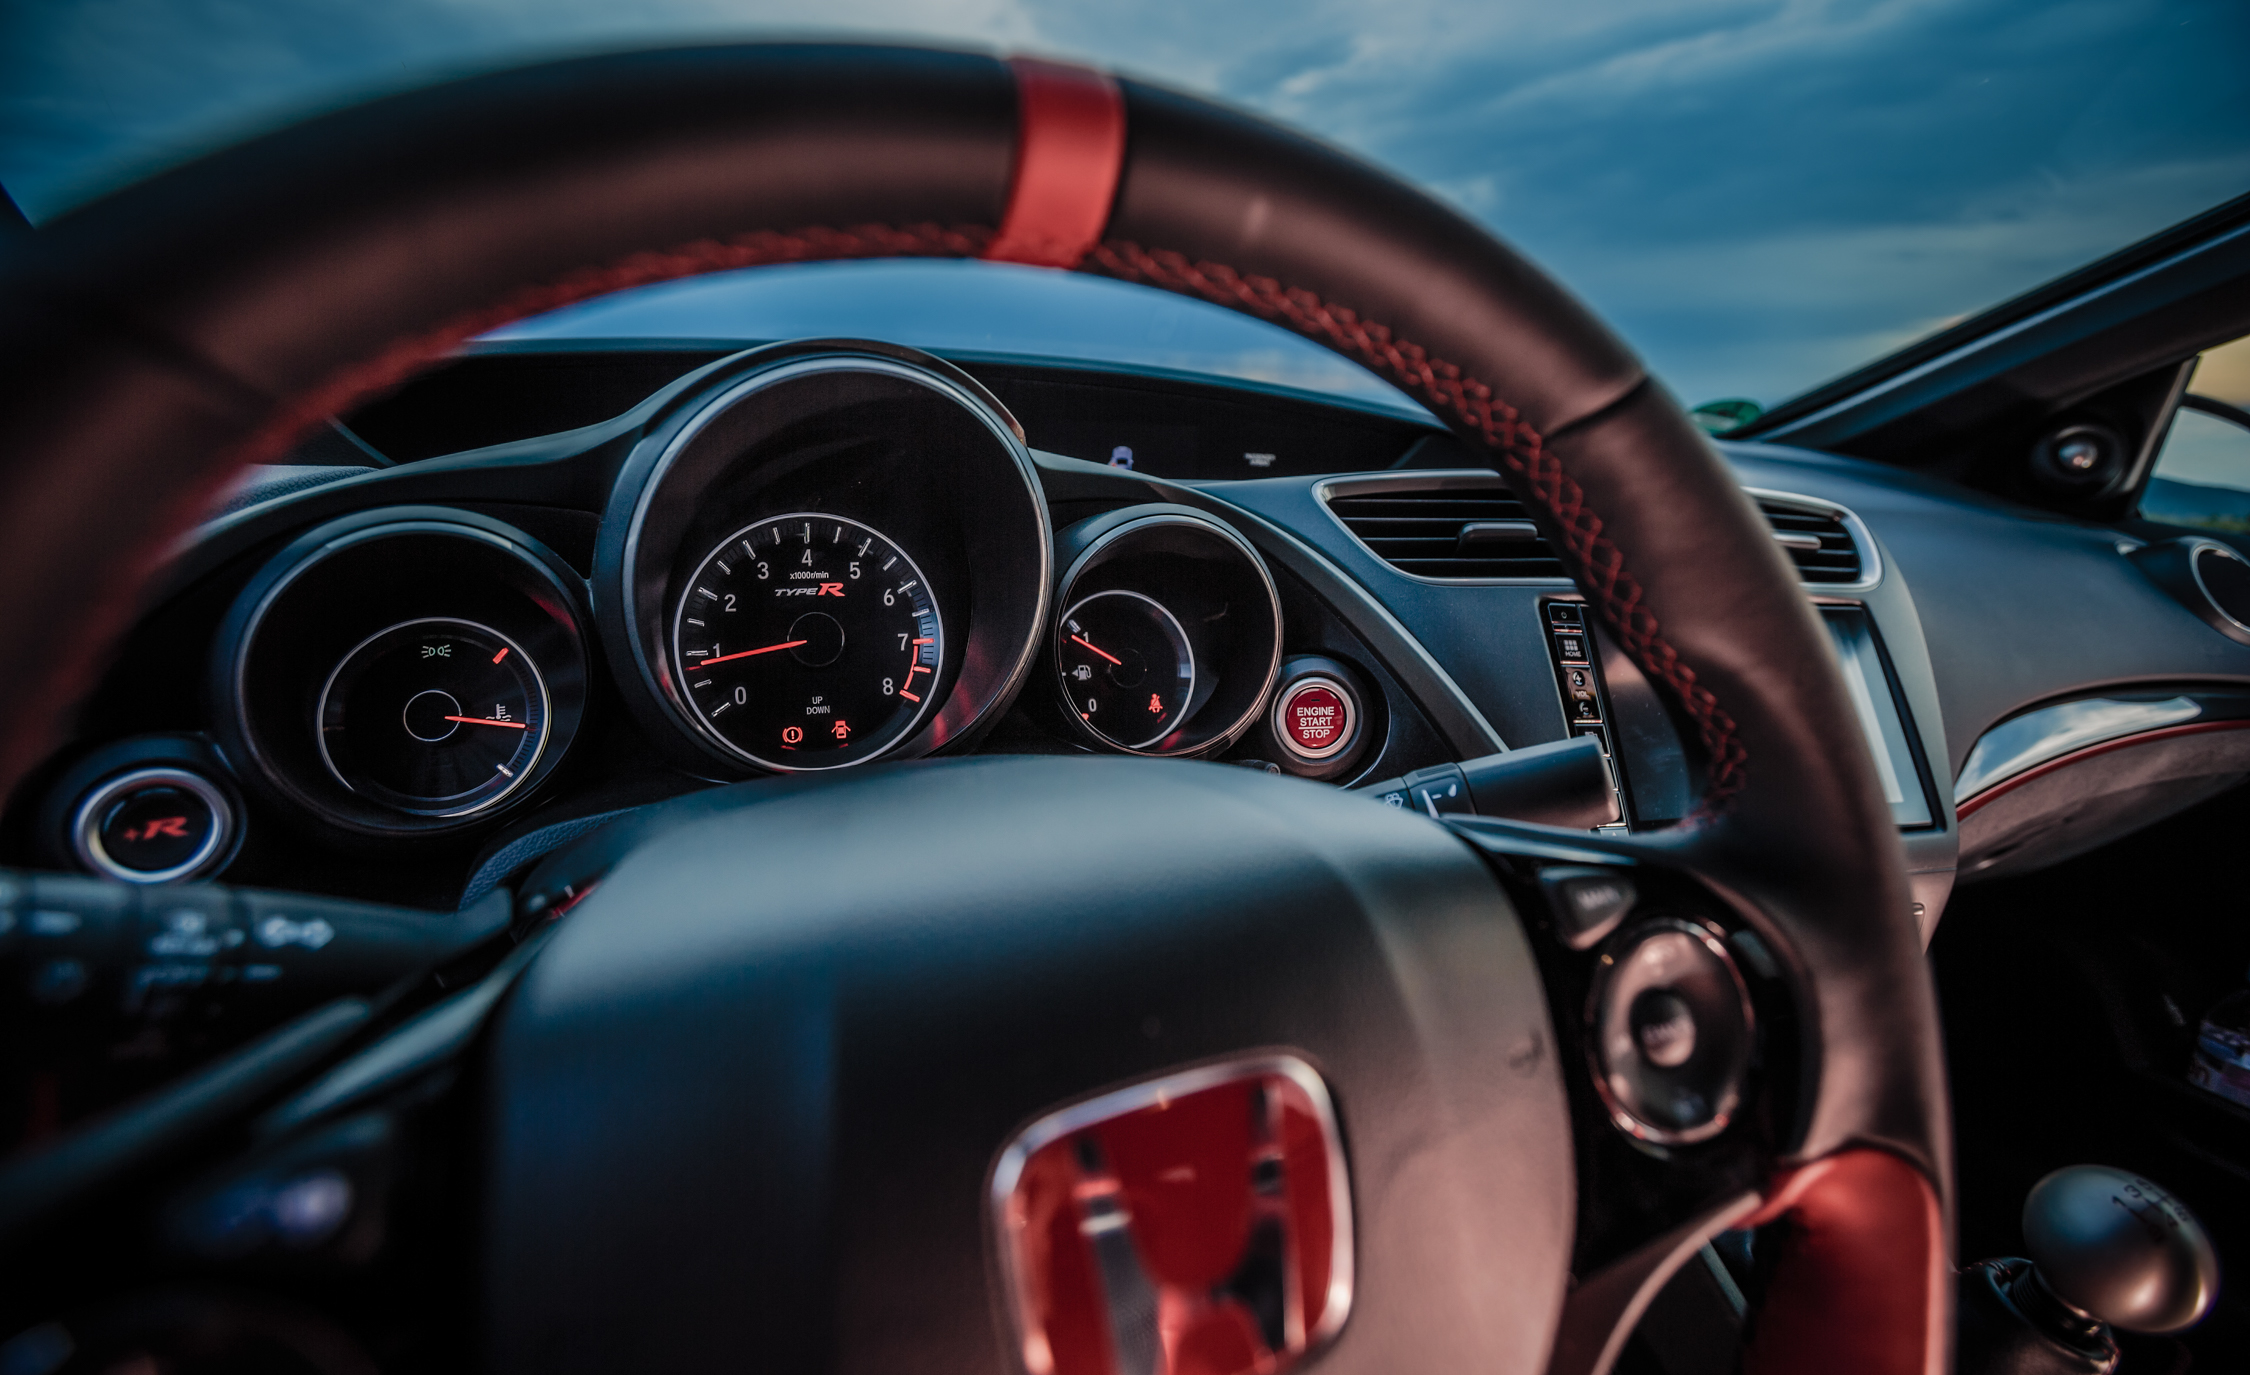 2015 Honda Civic Type R Interior Speedometer